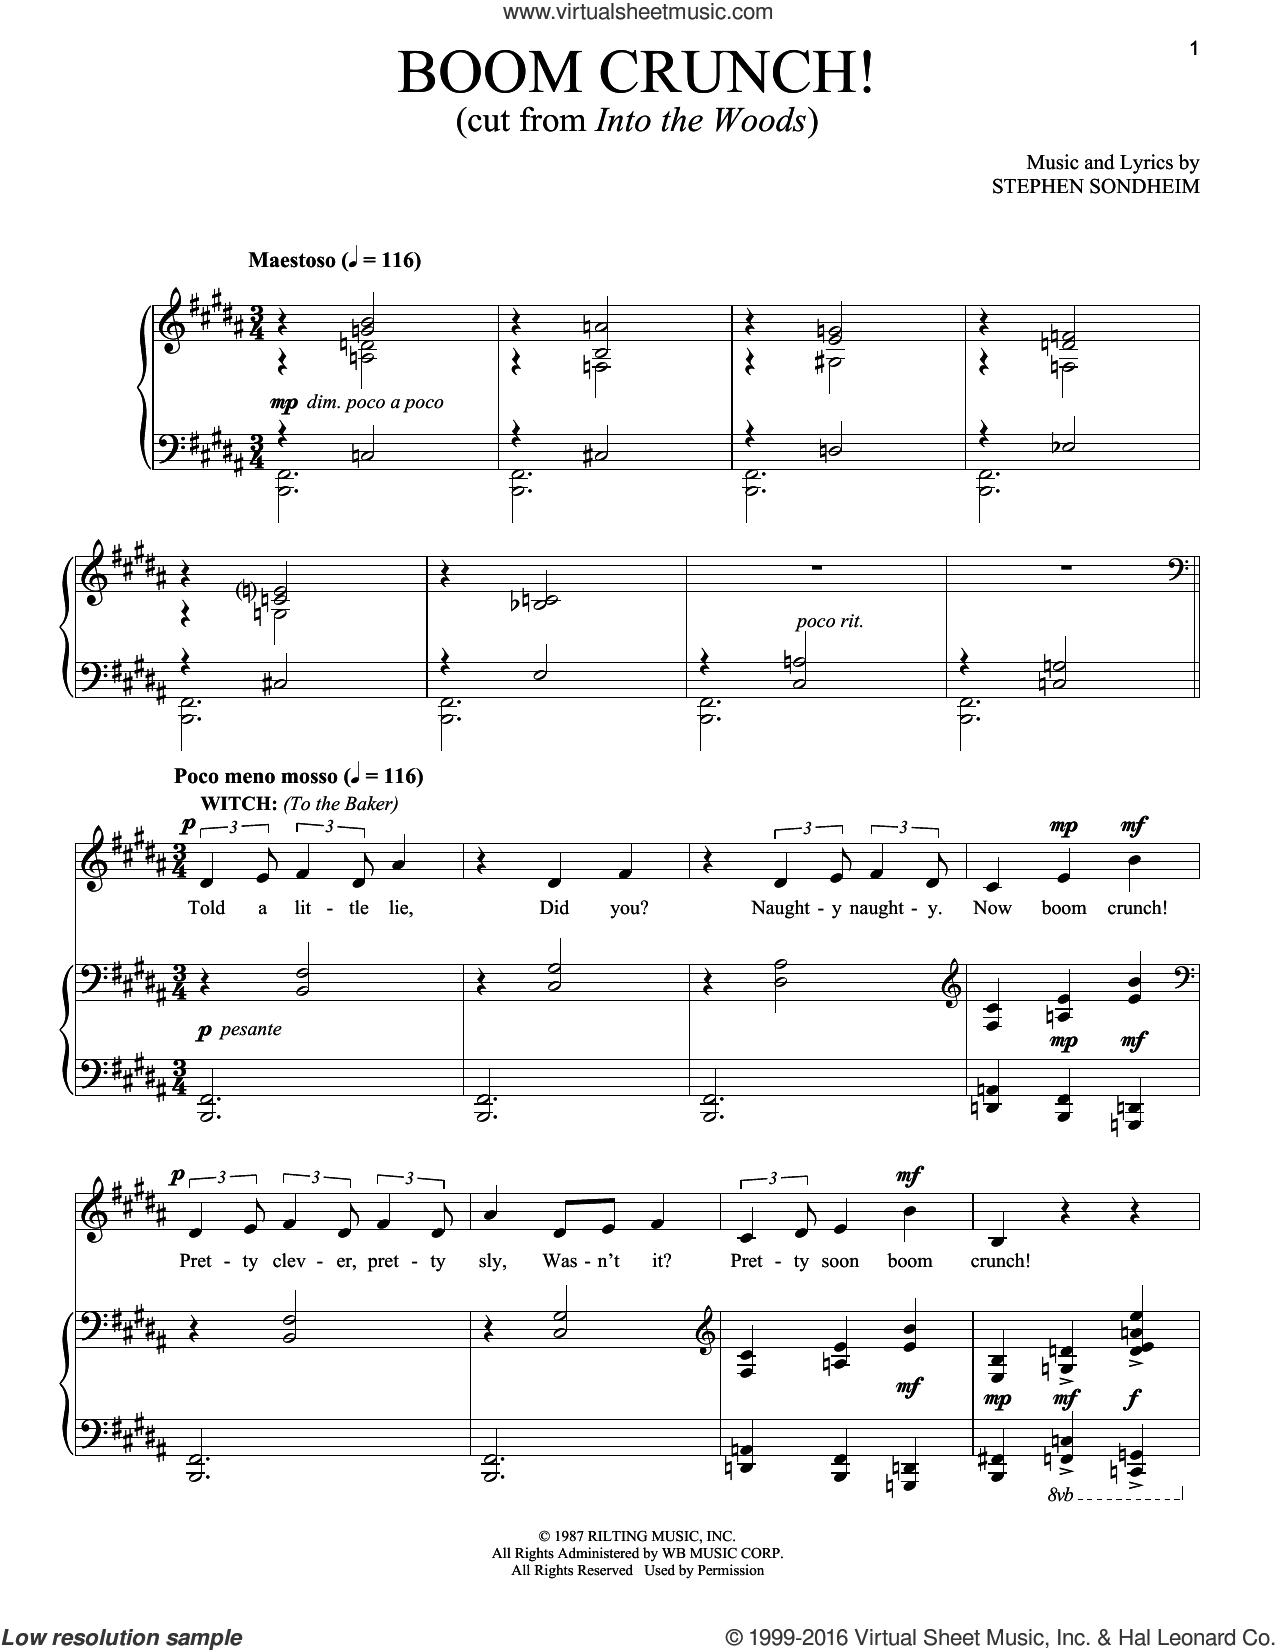 Boom Crunch sheet music for voice and piano by Stephen Sondheim, intermediate skill level